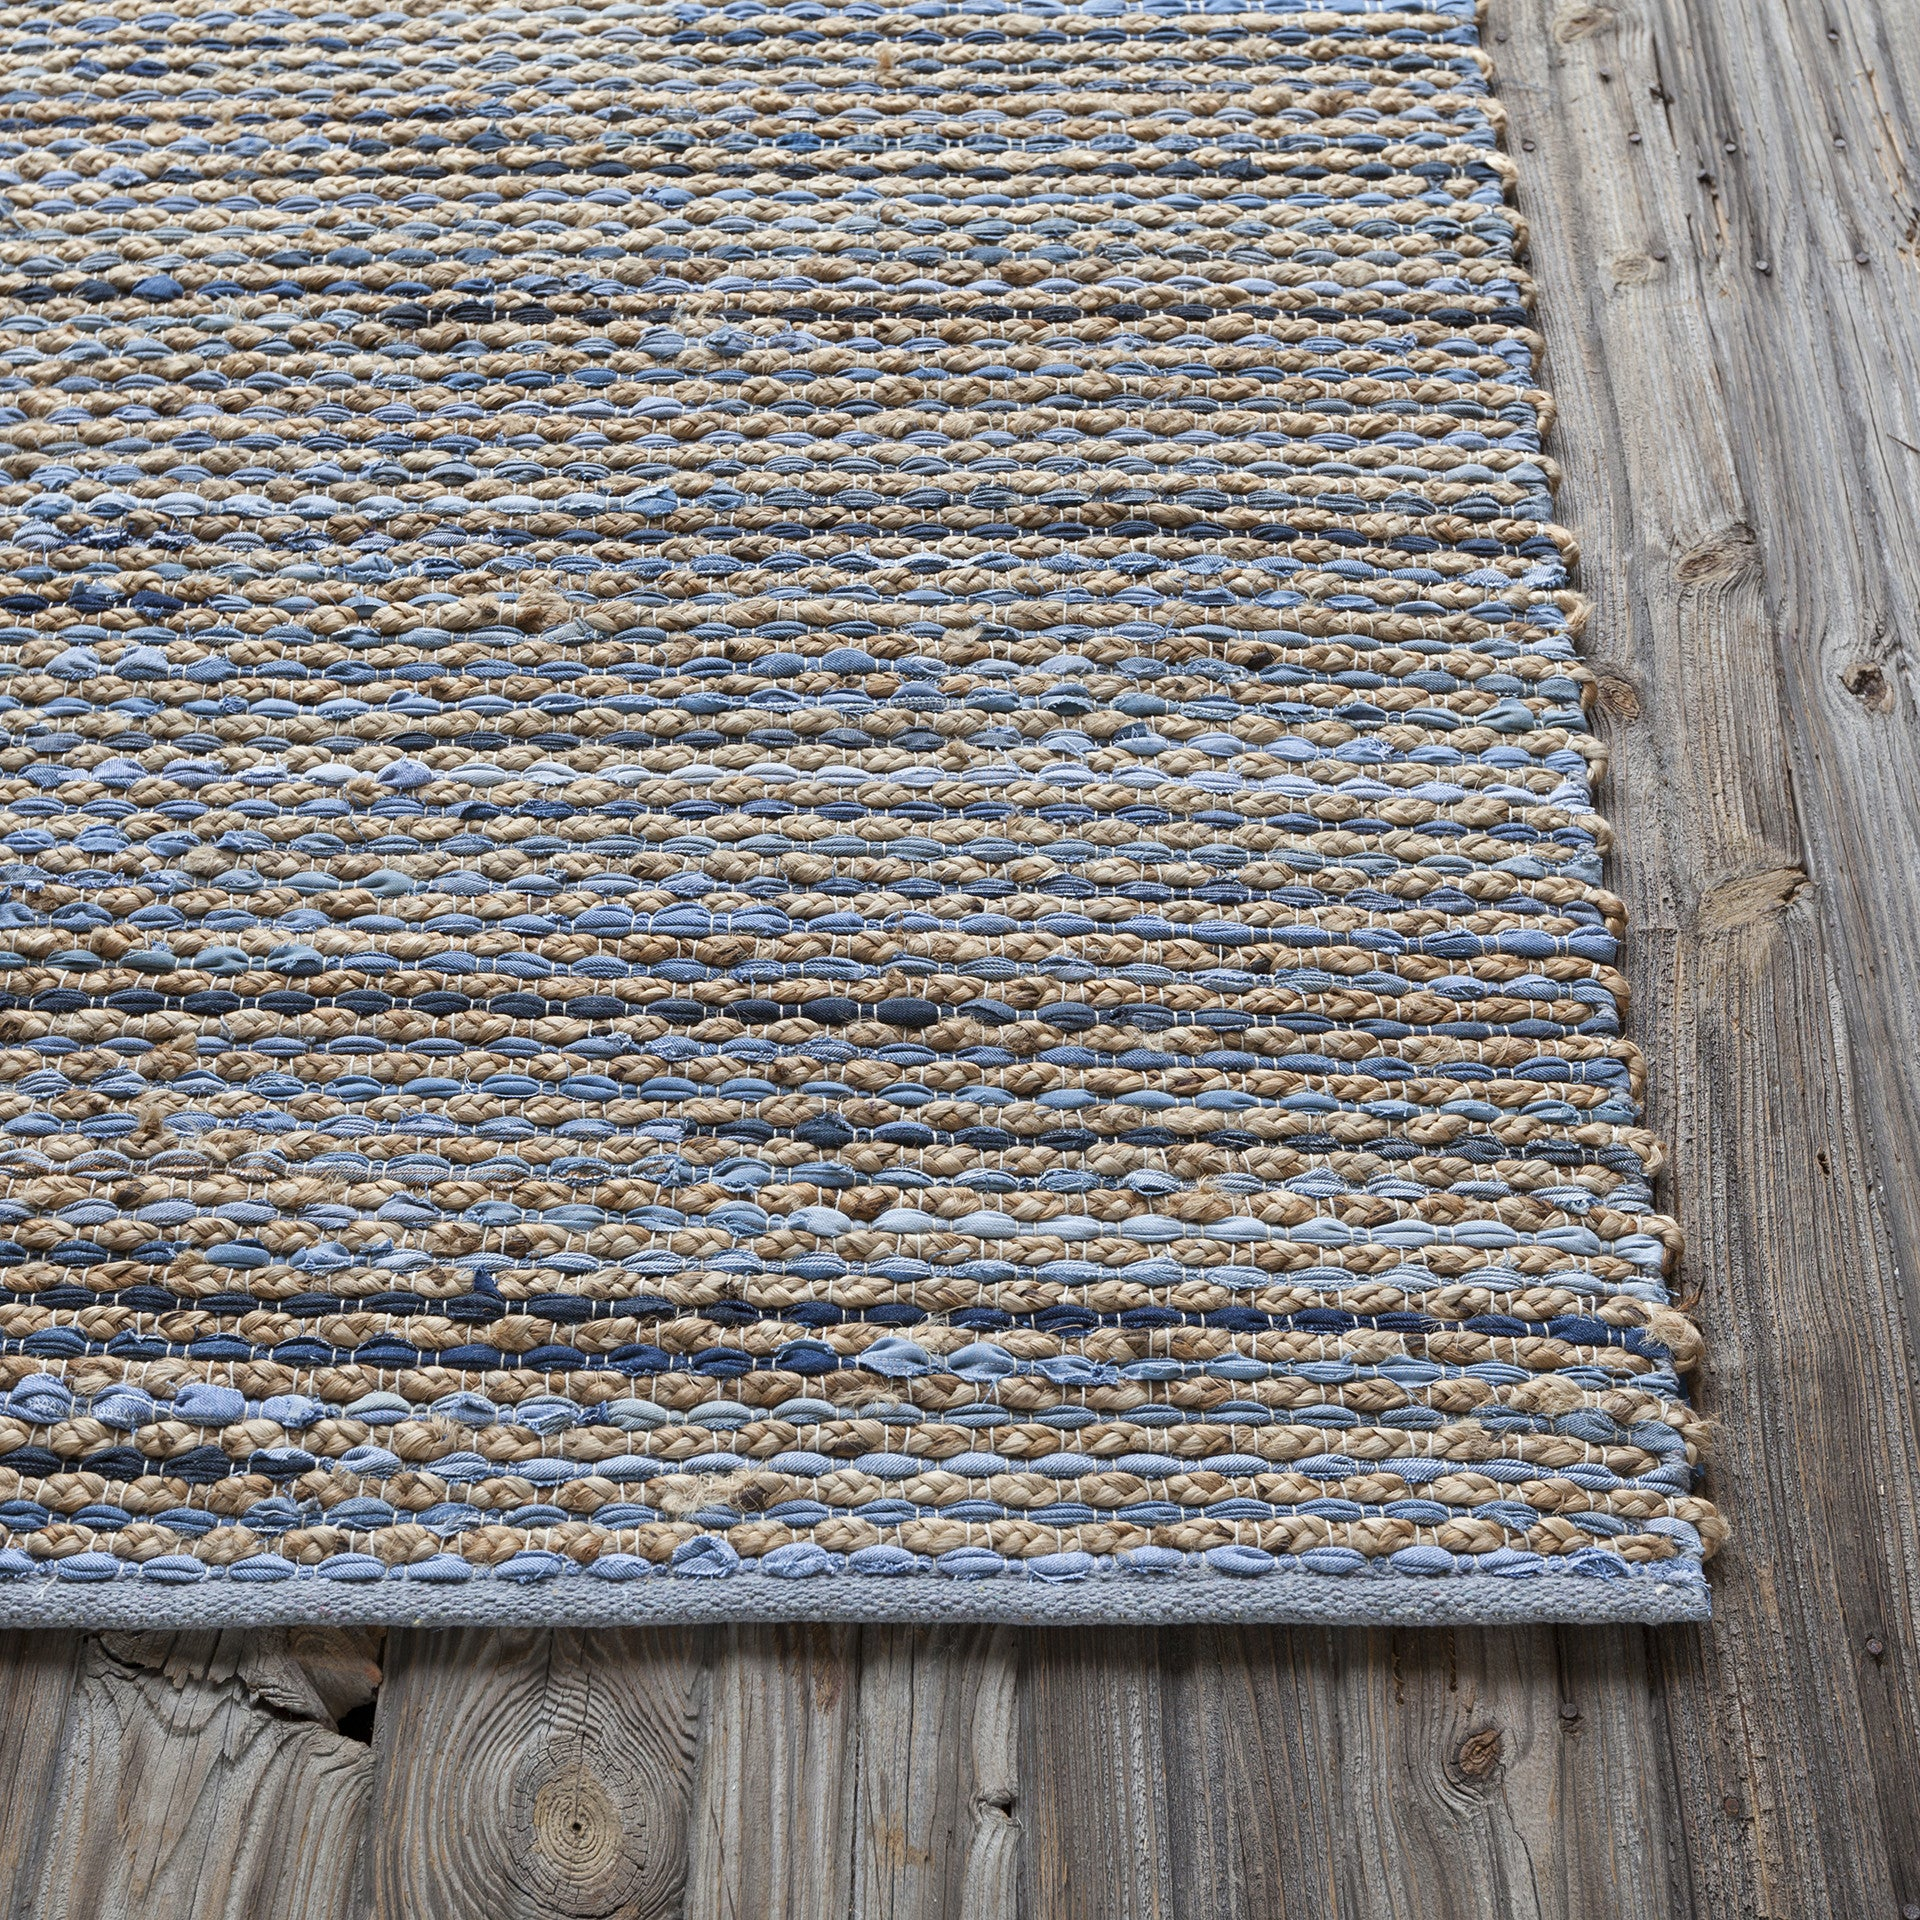 Popular Easton Collection Hand-Woven Area Rug in Blue, Tan, & Grey design  UQ98